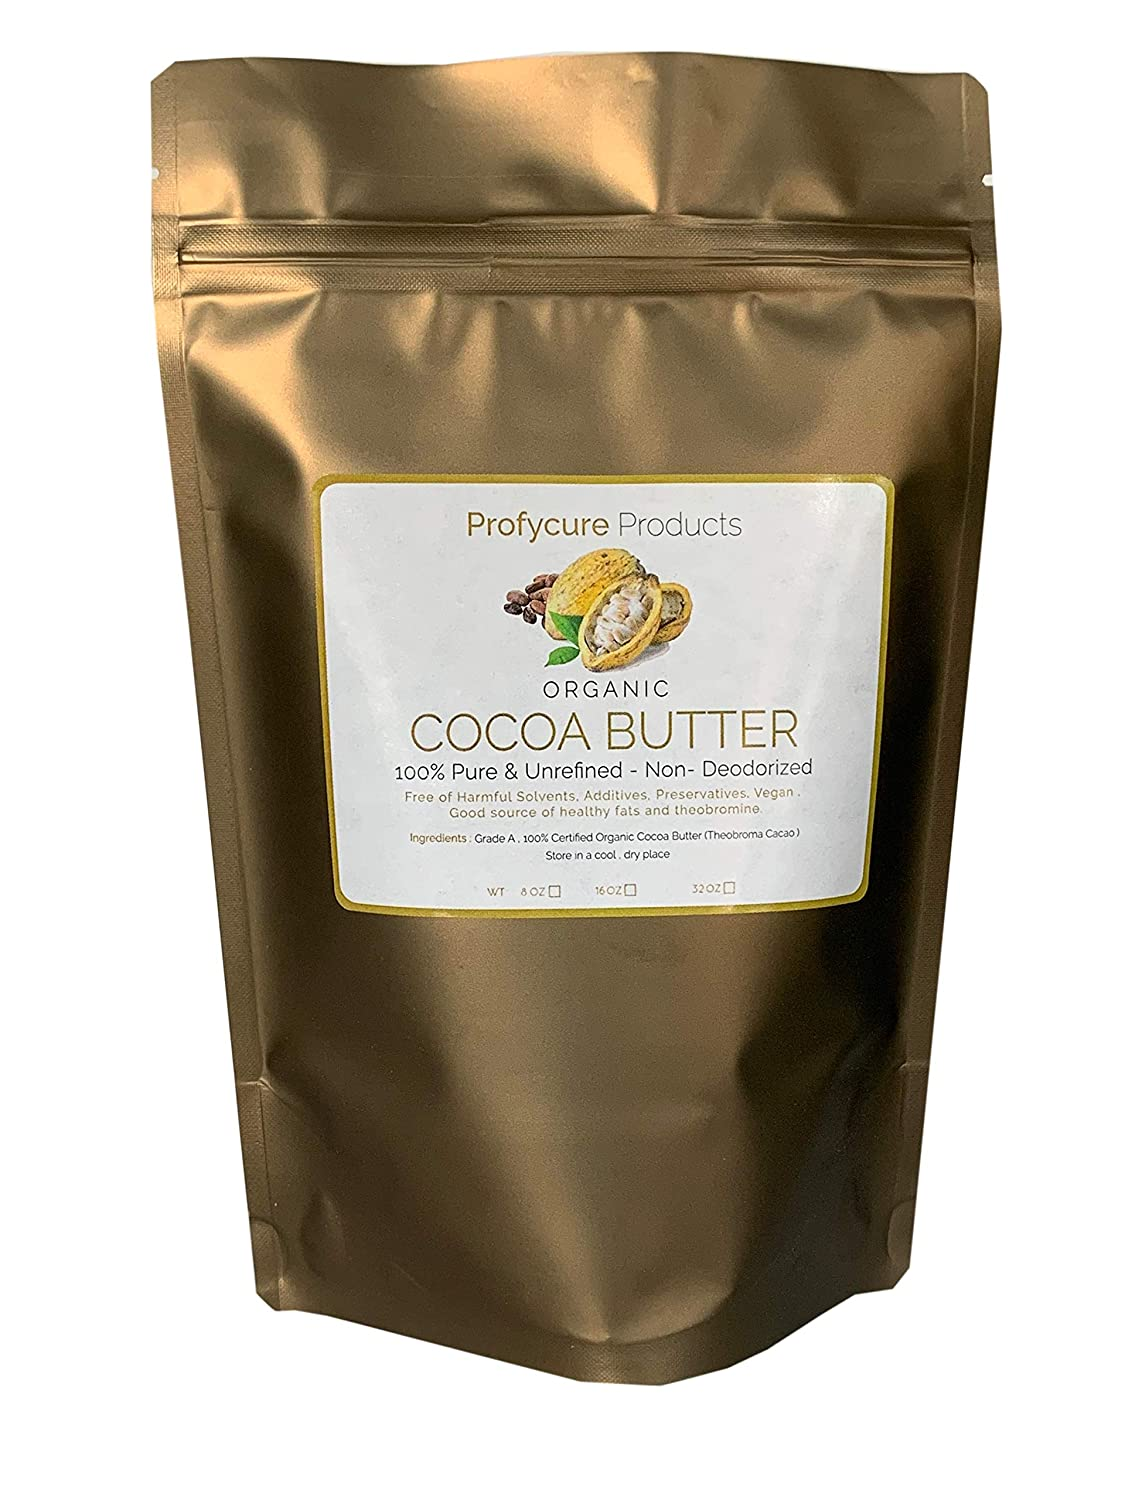 Organic Cocoa butter 8 Oz (1/2 Lb) Food grade Raw cacao butter with organic certificate